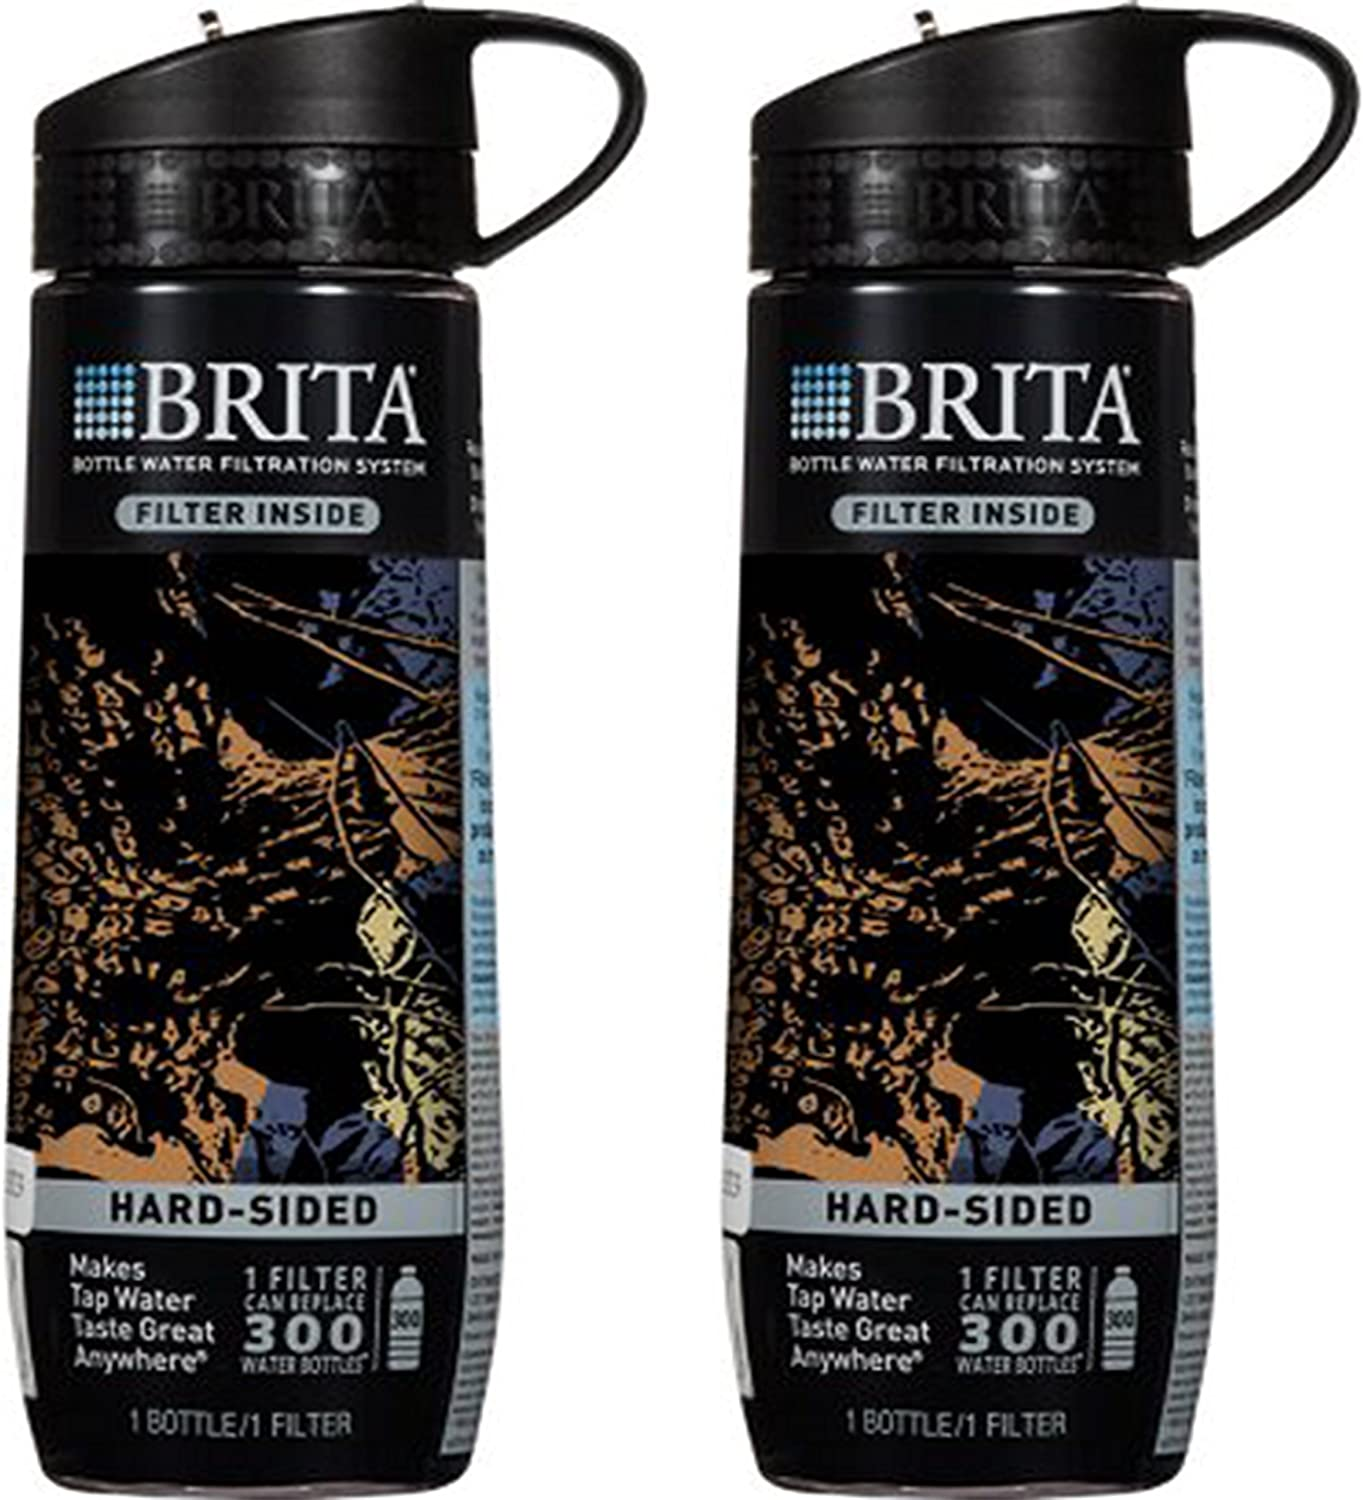 Brita Black Camo Hard Sided Water Bottle With Filter 23.7 Ounce (Pack of 2)